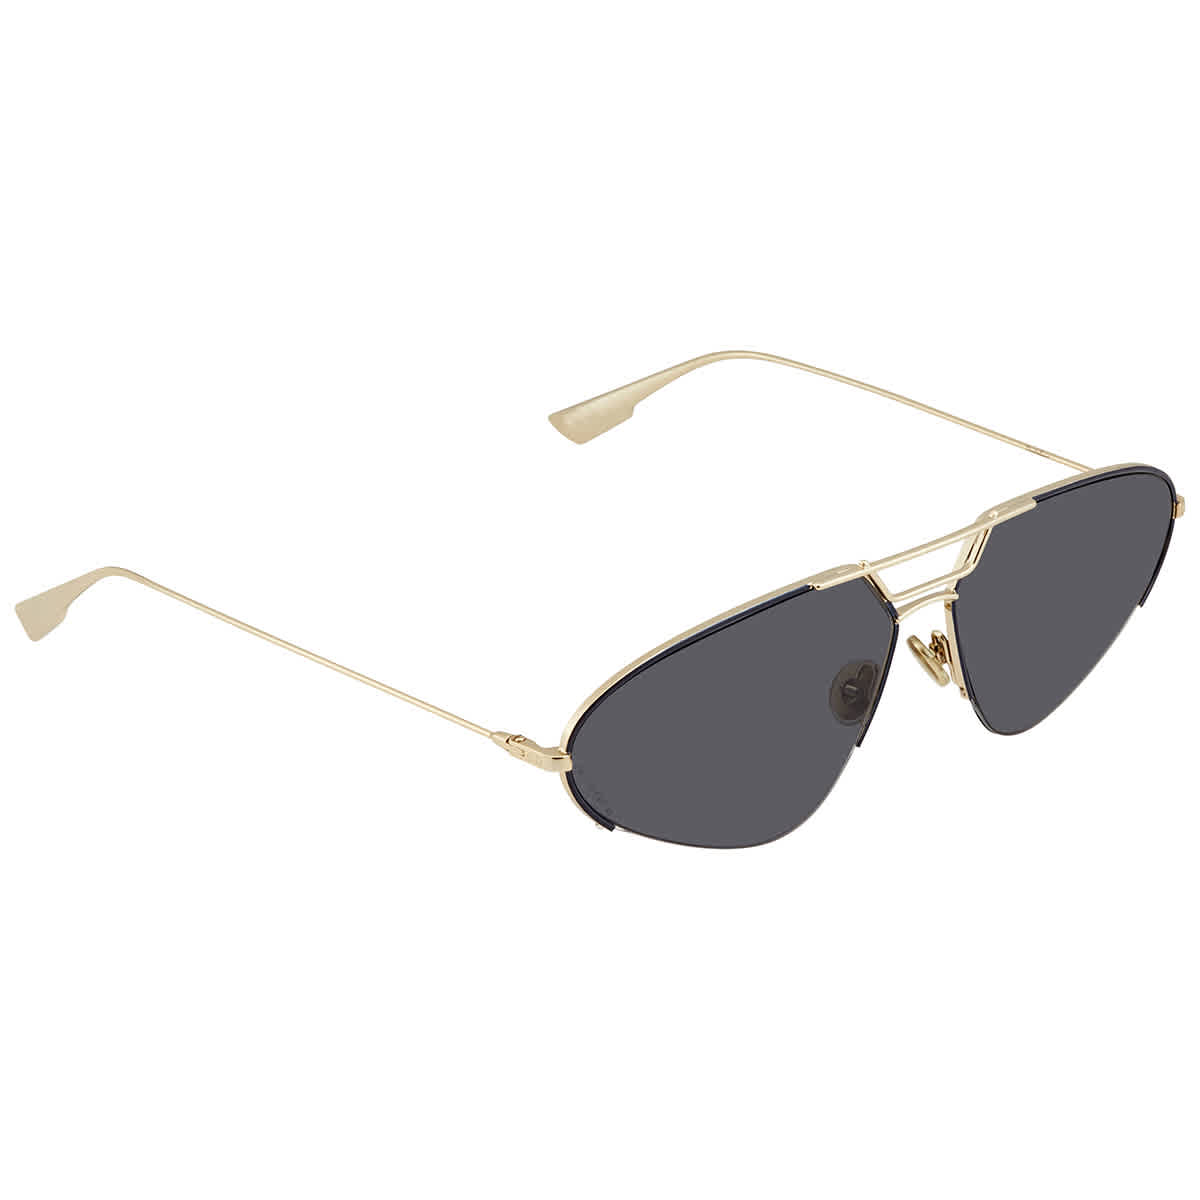 Dior Grey Aviator Ladies Sunglasses Stellaire5 0000/2k 62 In Gold Tone,grey,pink,rose Gold Tone